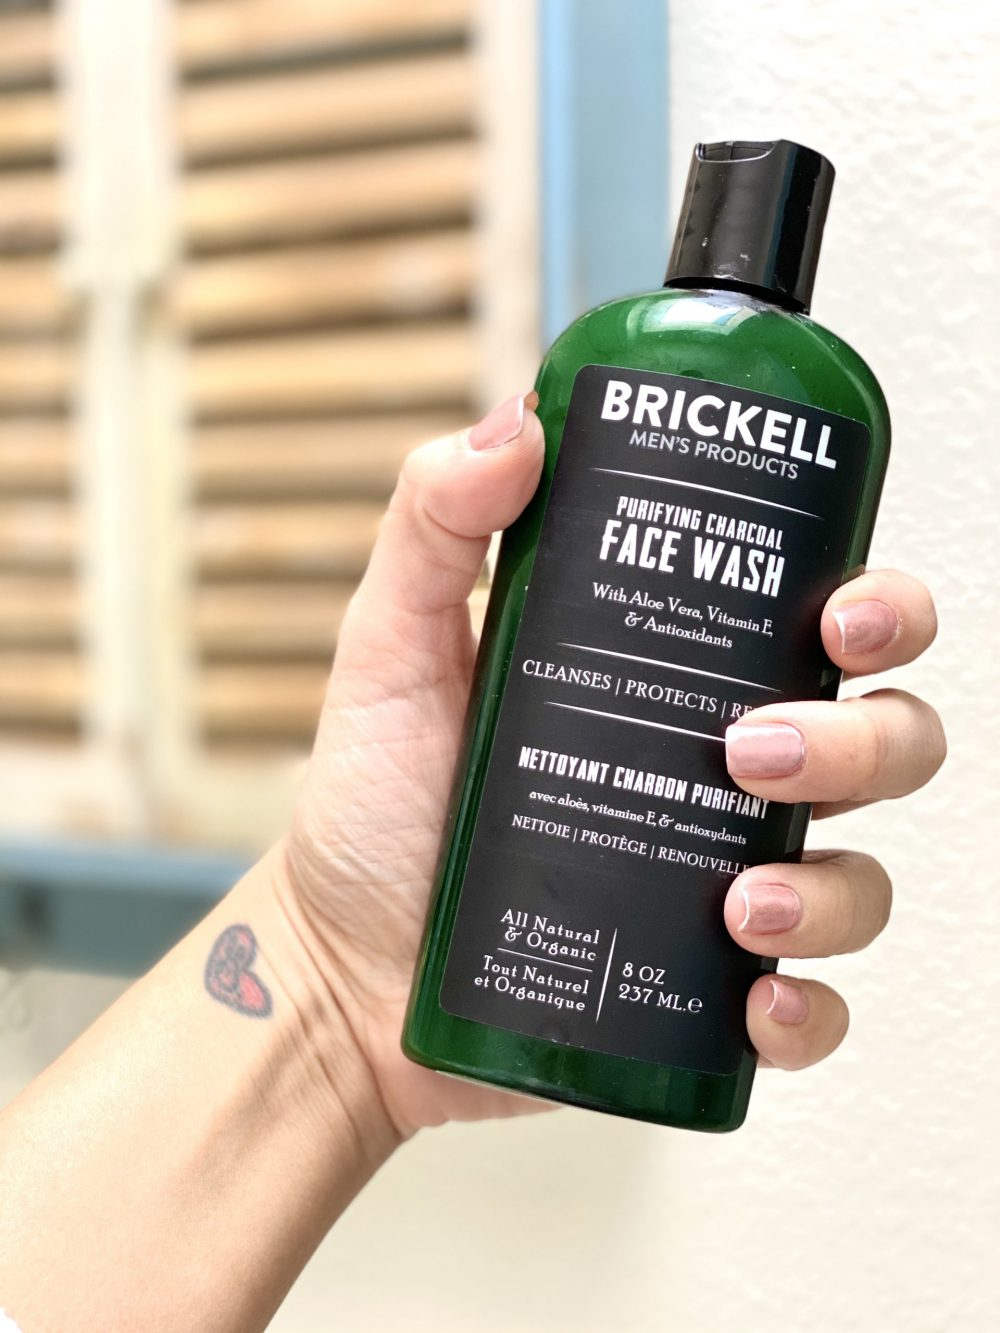 Brickell clean skincare for men